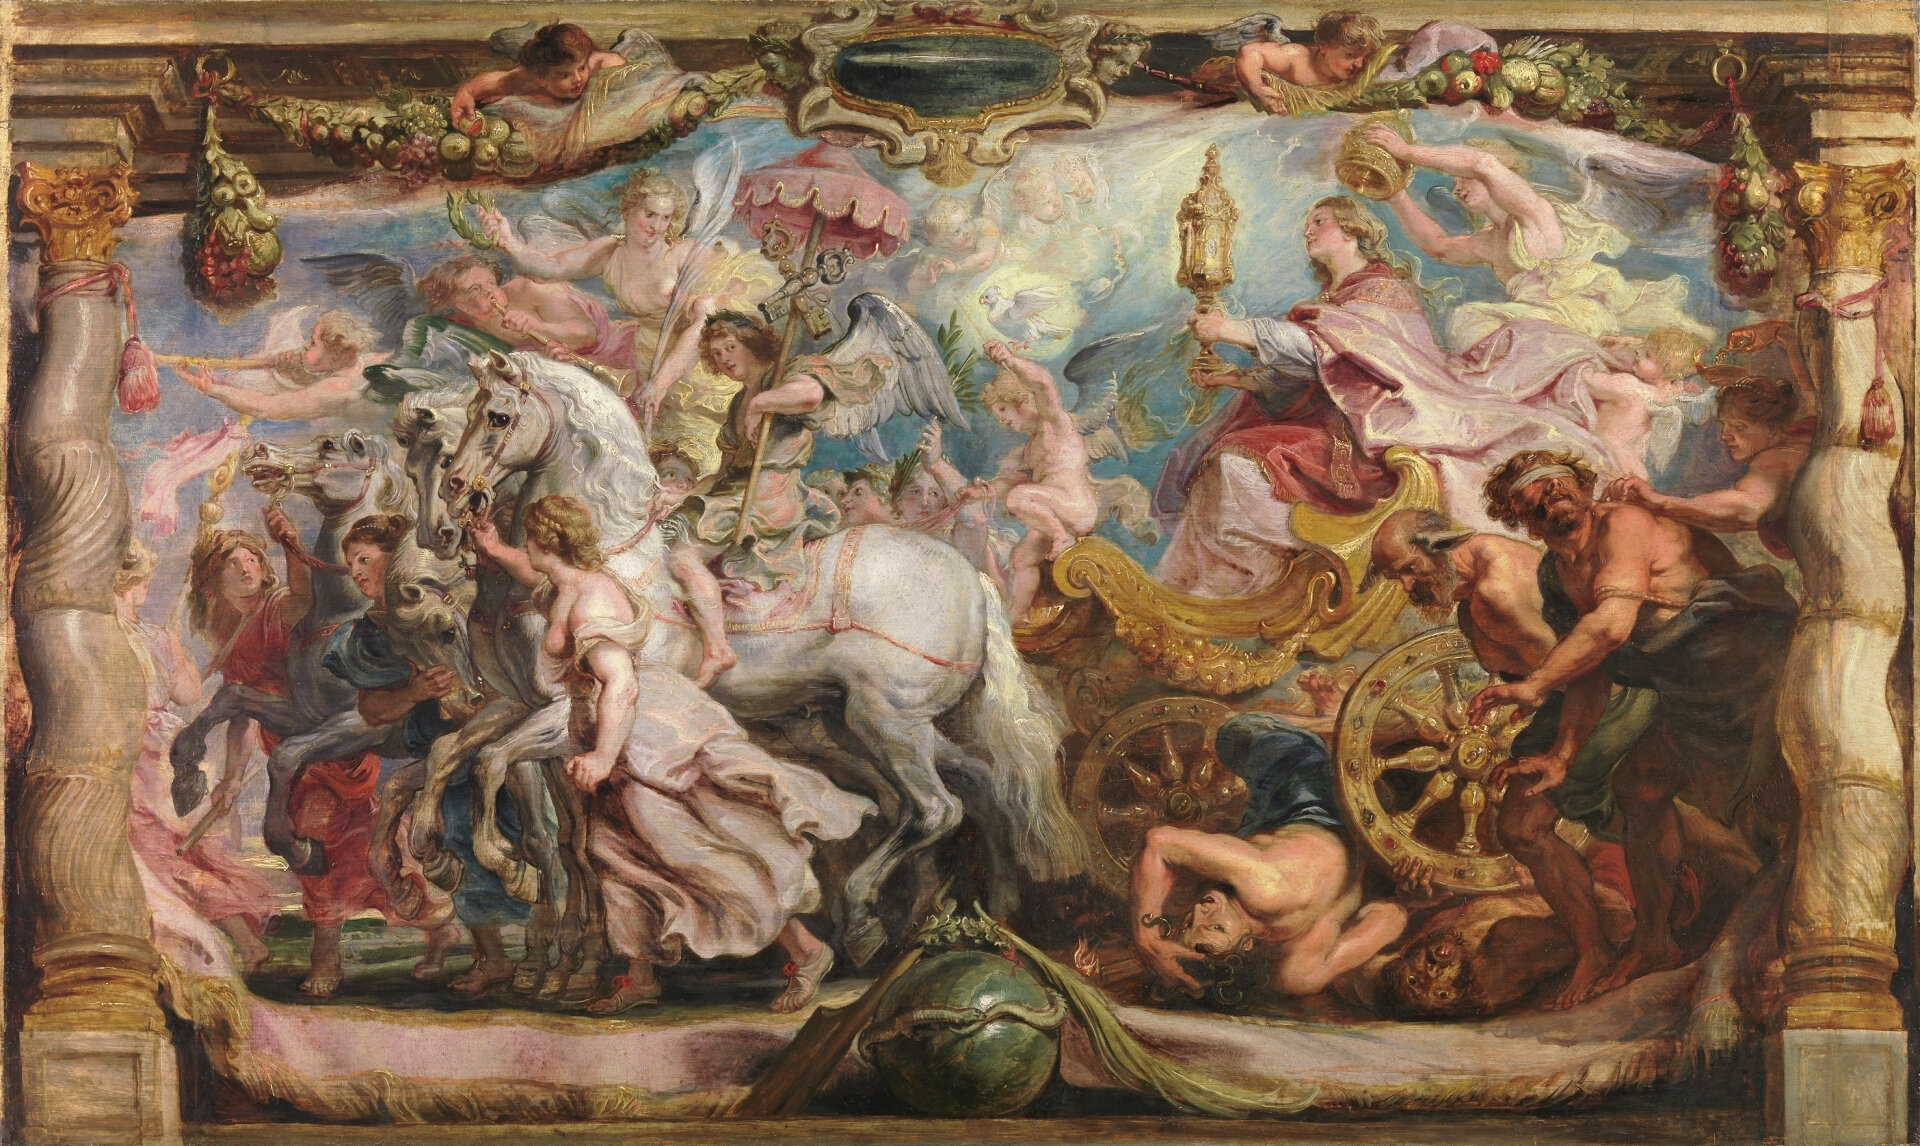 Exhibition at the Prado Museum brings together 82 sketches